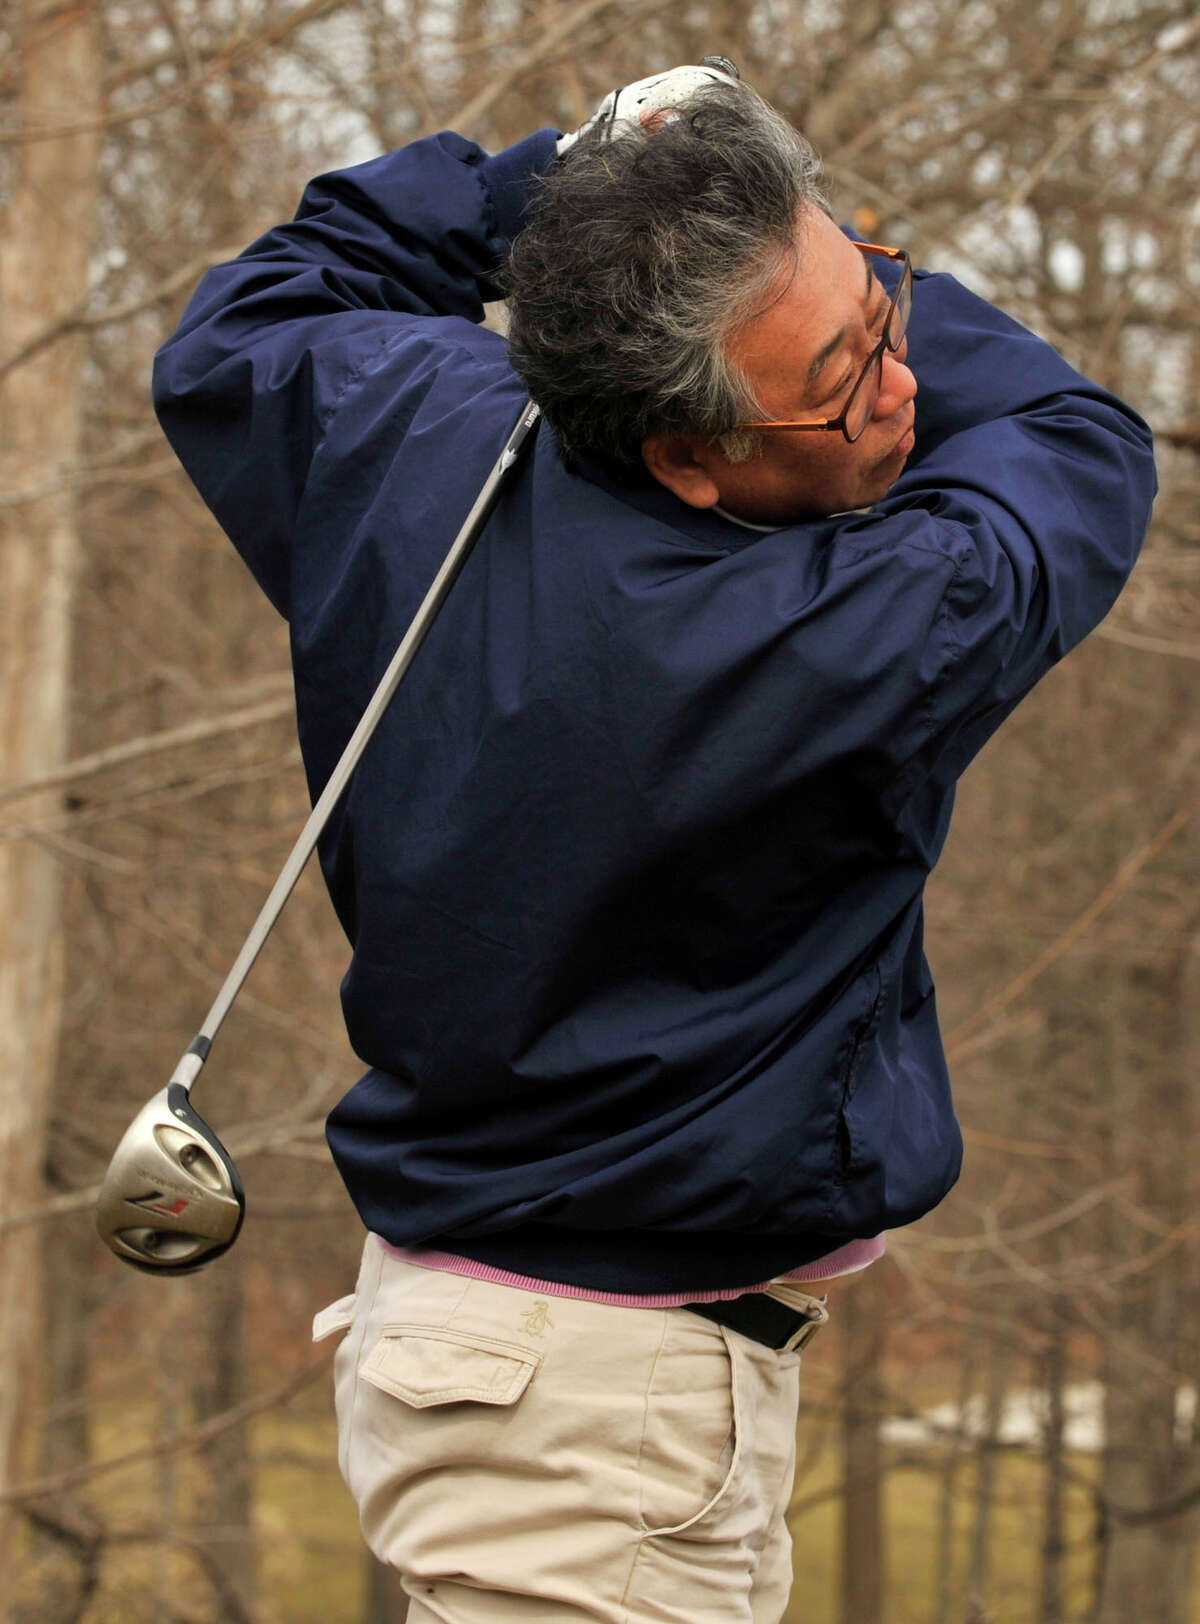 Young Kim tees off at the 11th hole at Sterling Farms Golf Club in Stamford on Monday, March 11, 2013.